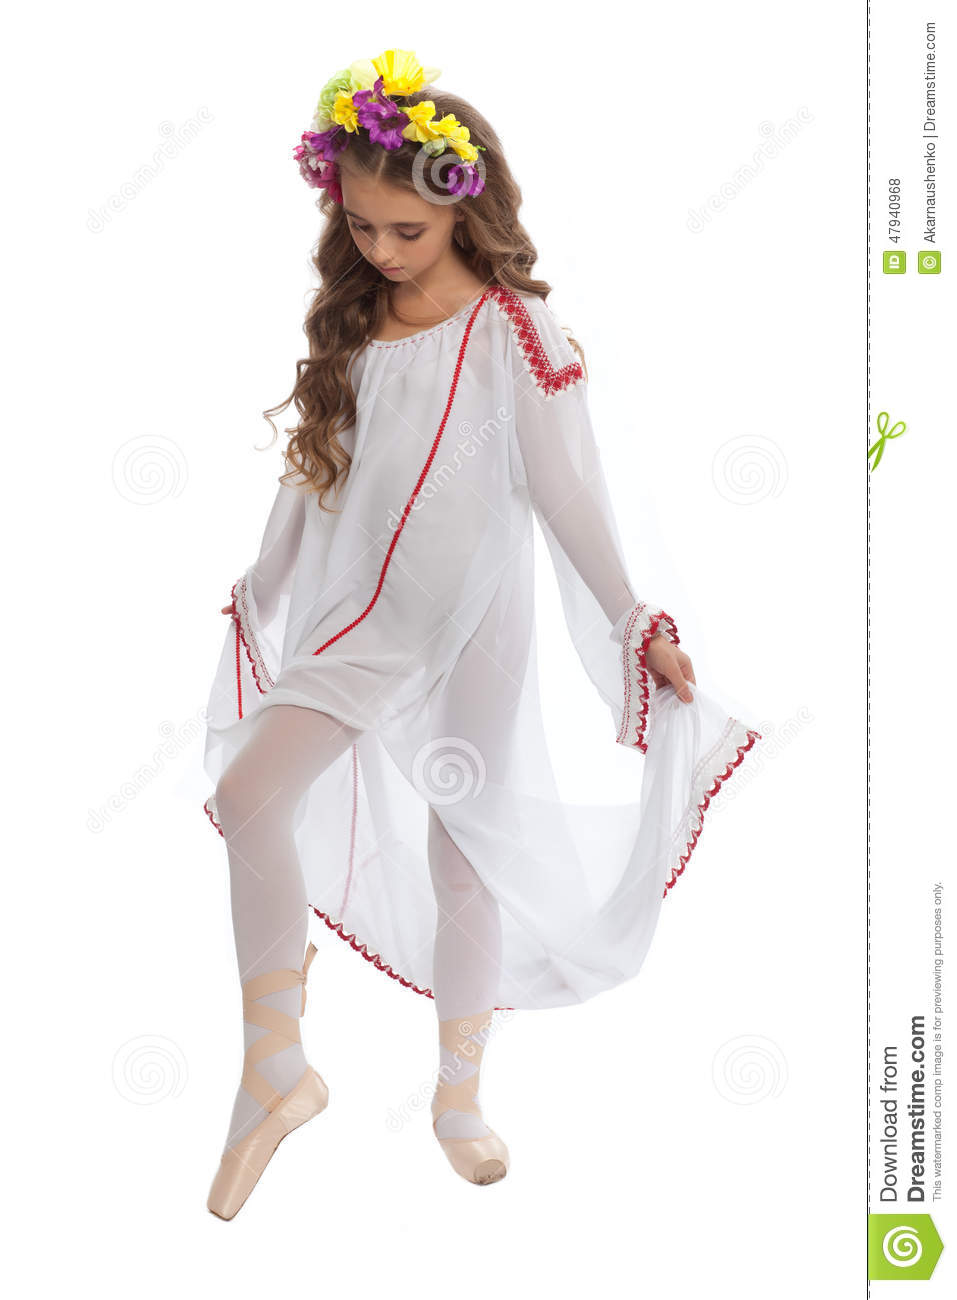 Young Girl In Ballet Shoes And Long White Dress Stock